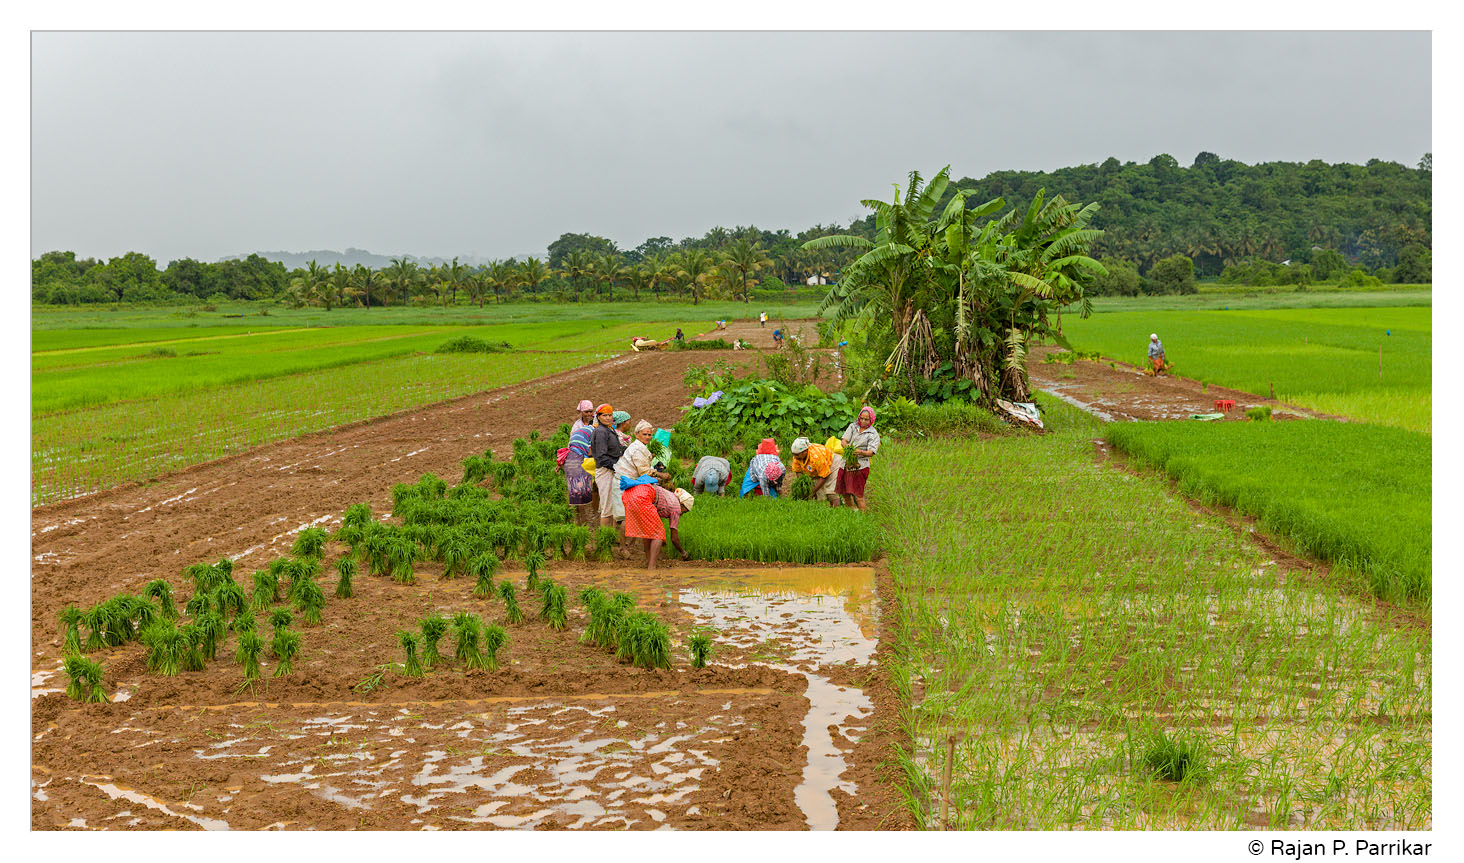 Paddy field work in Ucassaim, Goa